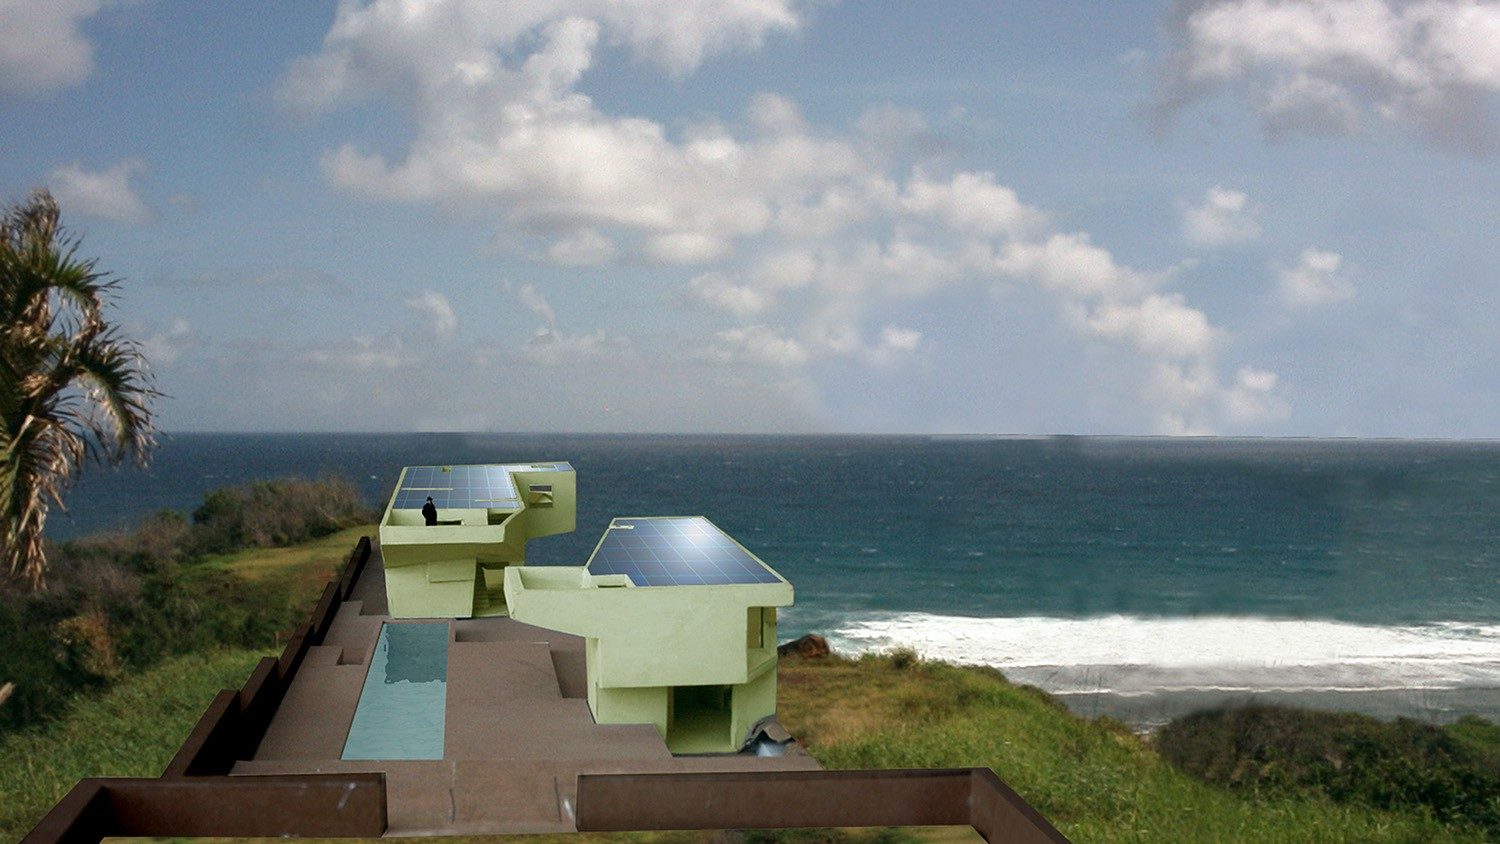 https://s3.us-east-2.amazonaws.com/steven-holl/uploads/projects/project-images/StevenHollArchitects_Oceanic_oceanic_1_WH.jpg